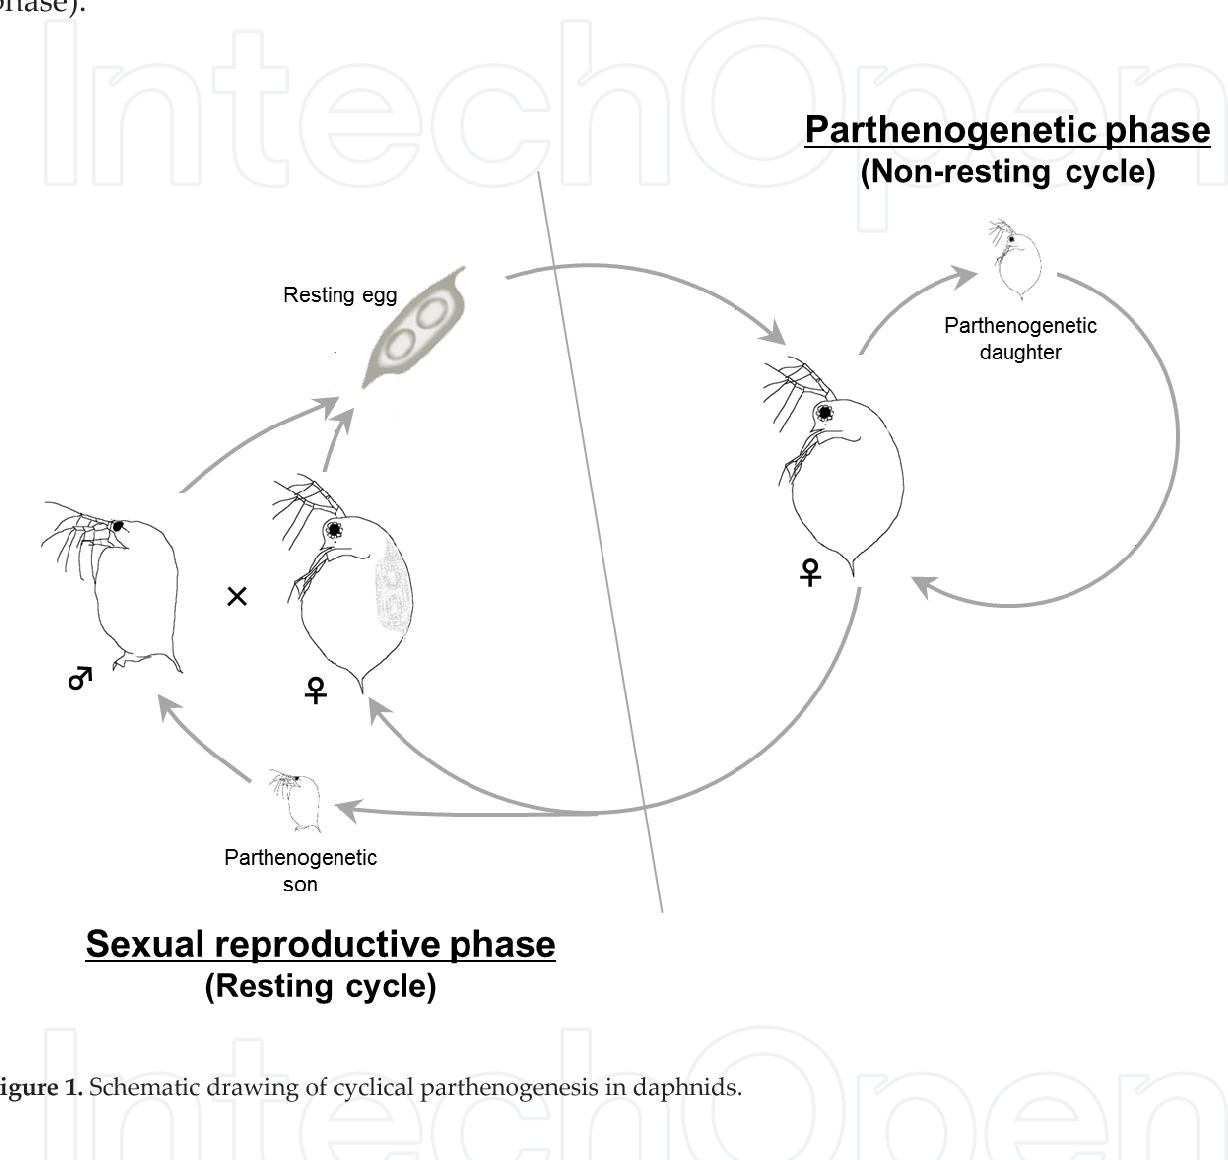 schematic drawing of cyclical parthenogenesis in daphnids